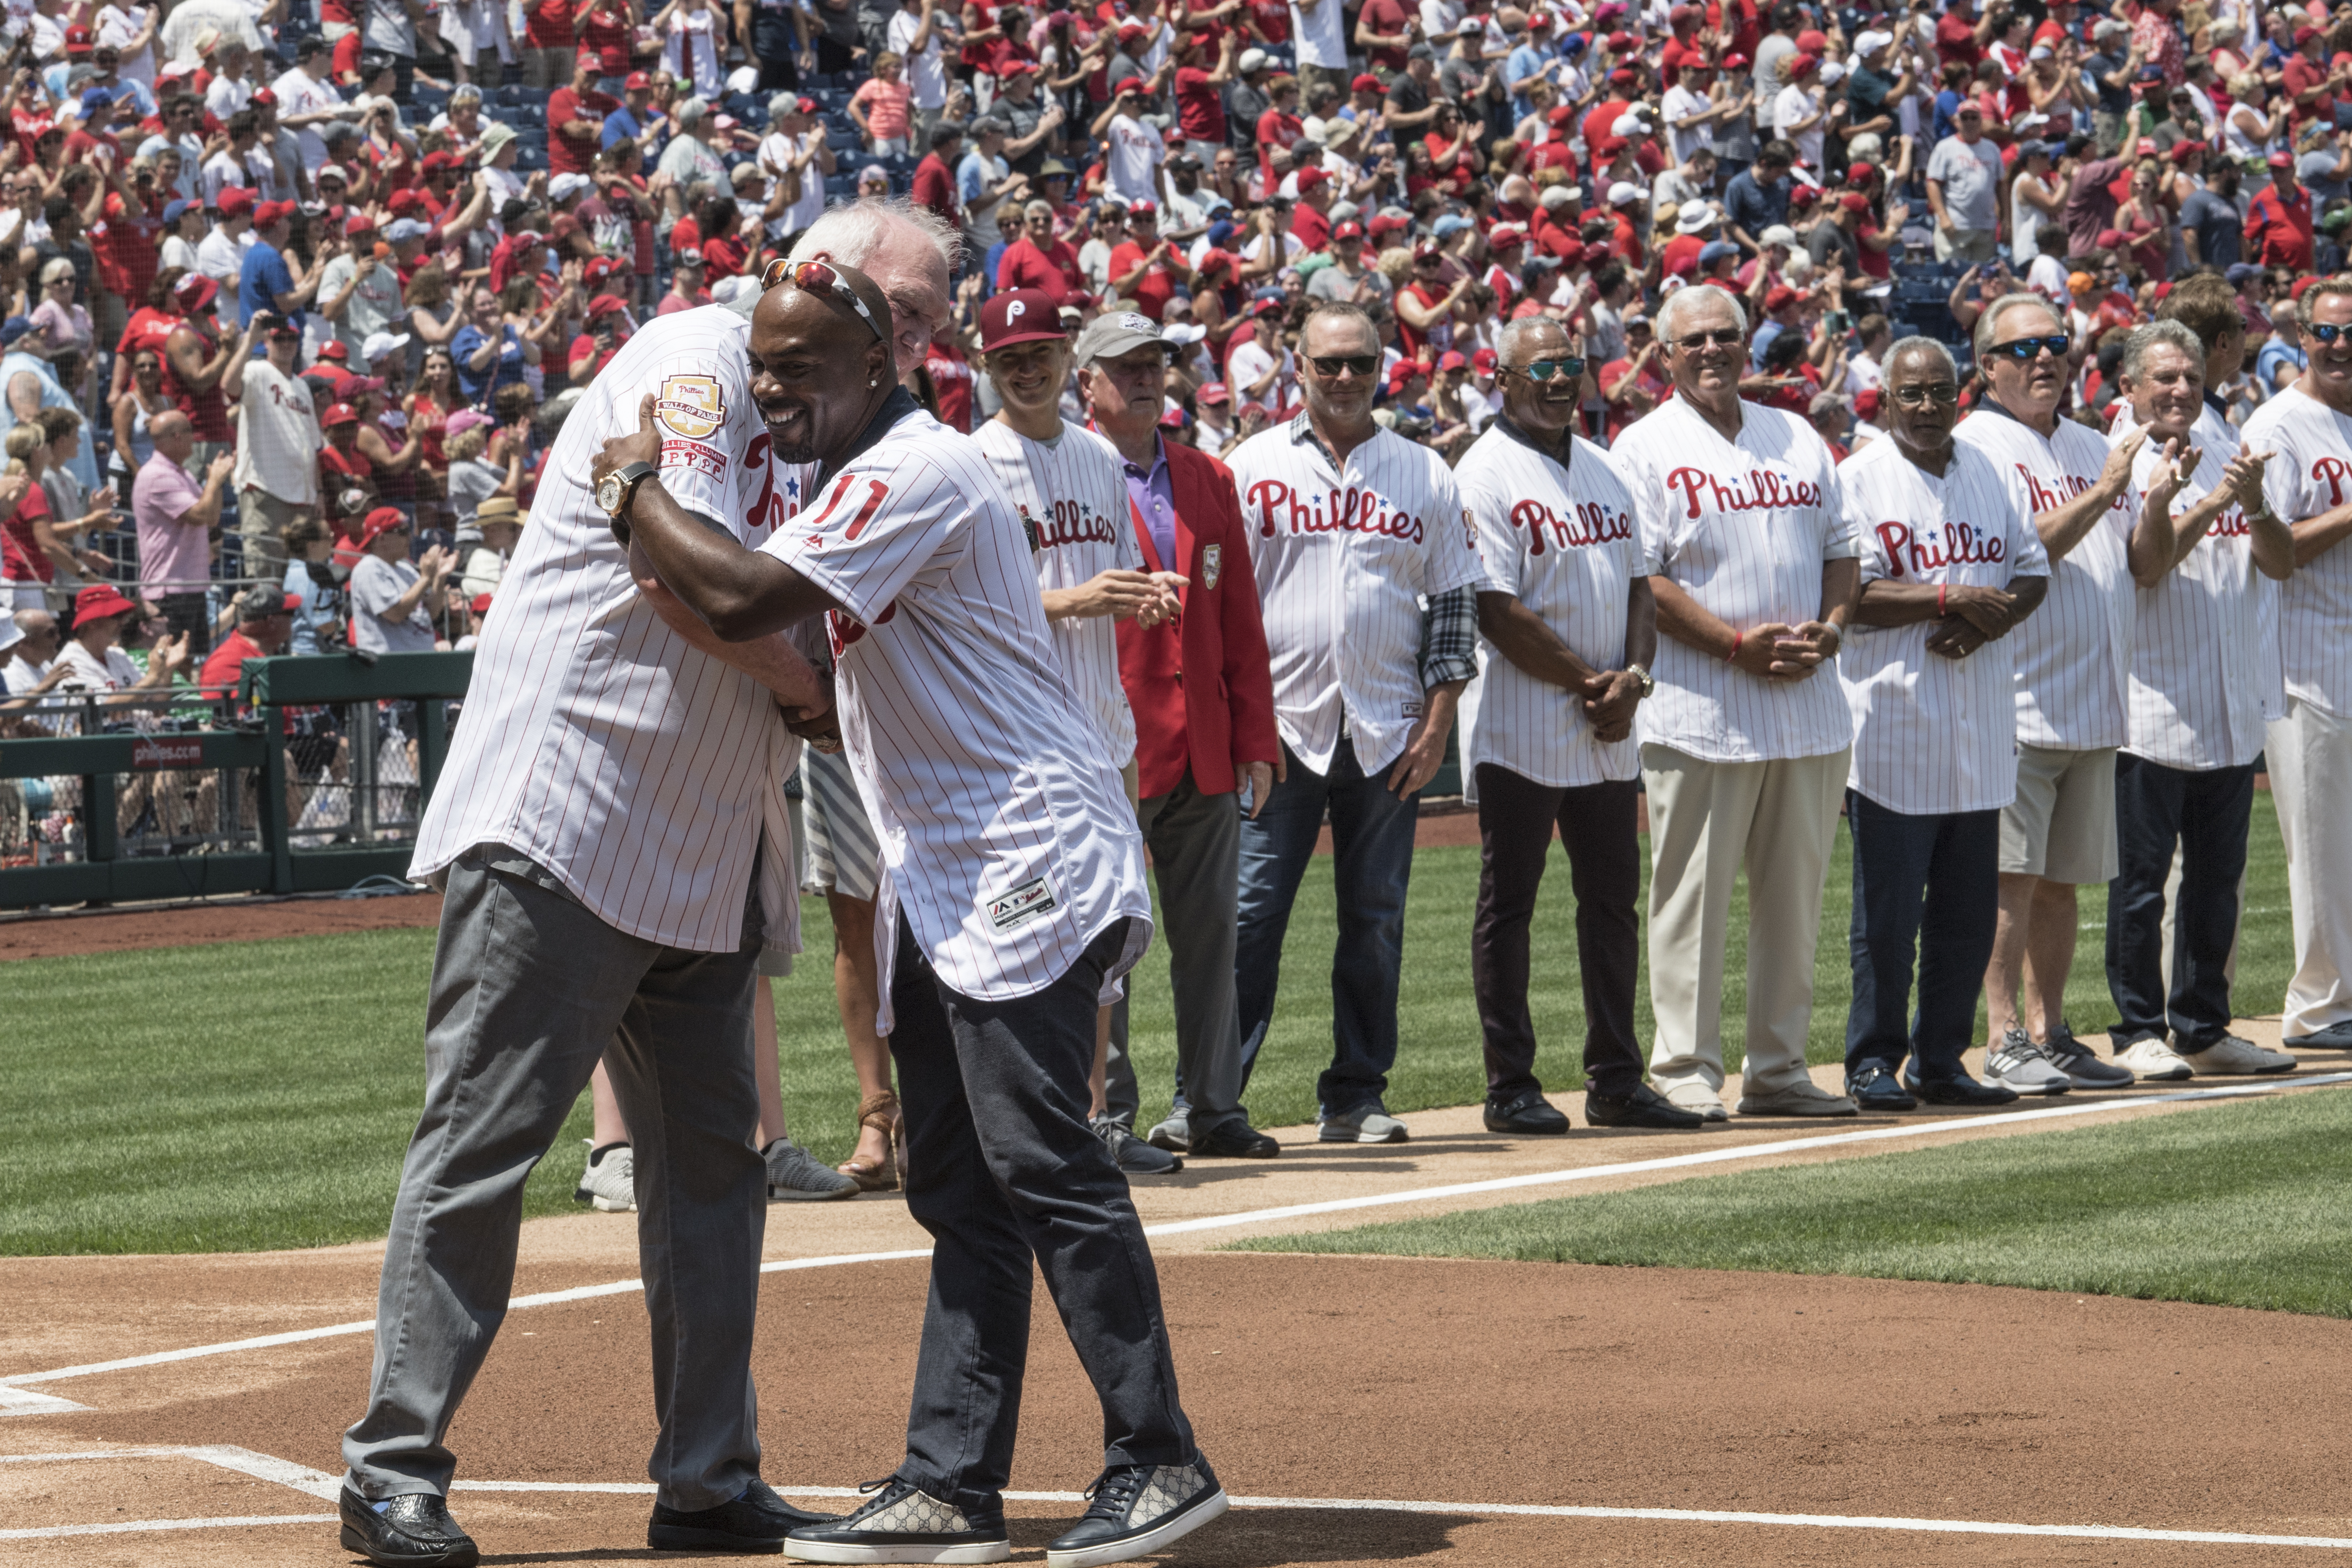 Charlie Manuel (left) embraces Jimmy Rollins as the 2008 Phillies are introduced prior to Sunday´s game. The team was celebrating the 10th anniversary of the World Series.